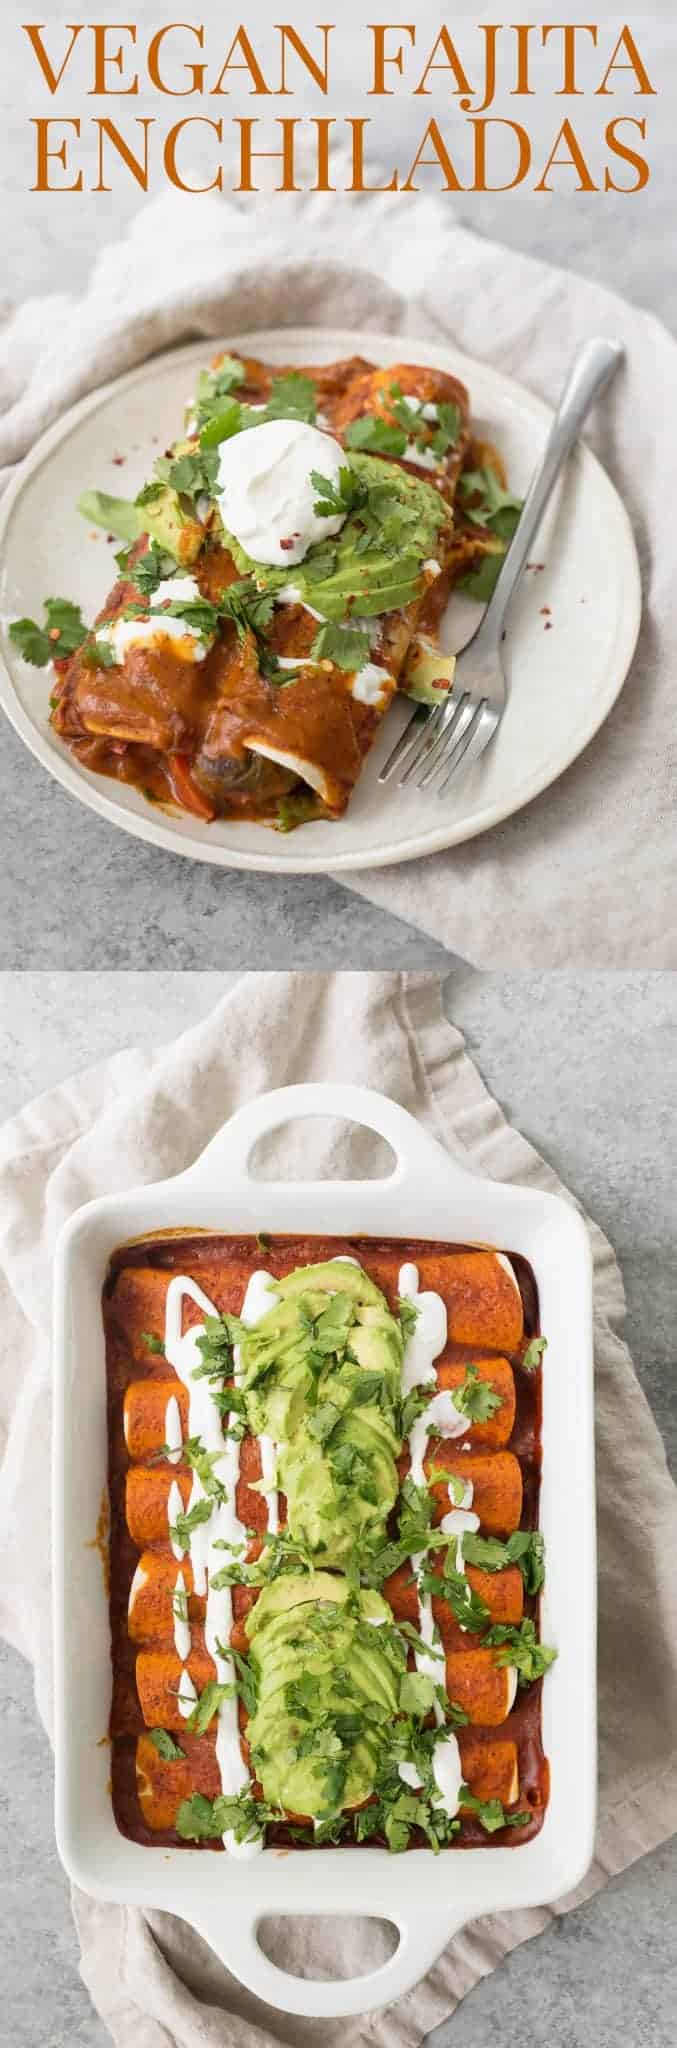 Veggie Fajita Enchiladas! These enchiladas are perfect for Cinco de Mayo. Roasted peppers, onions and beans covered in a homemade enchilada sauce and avocado. | www.delishknowledge.com